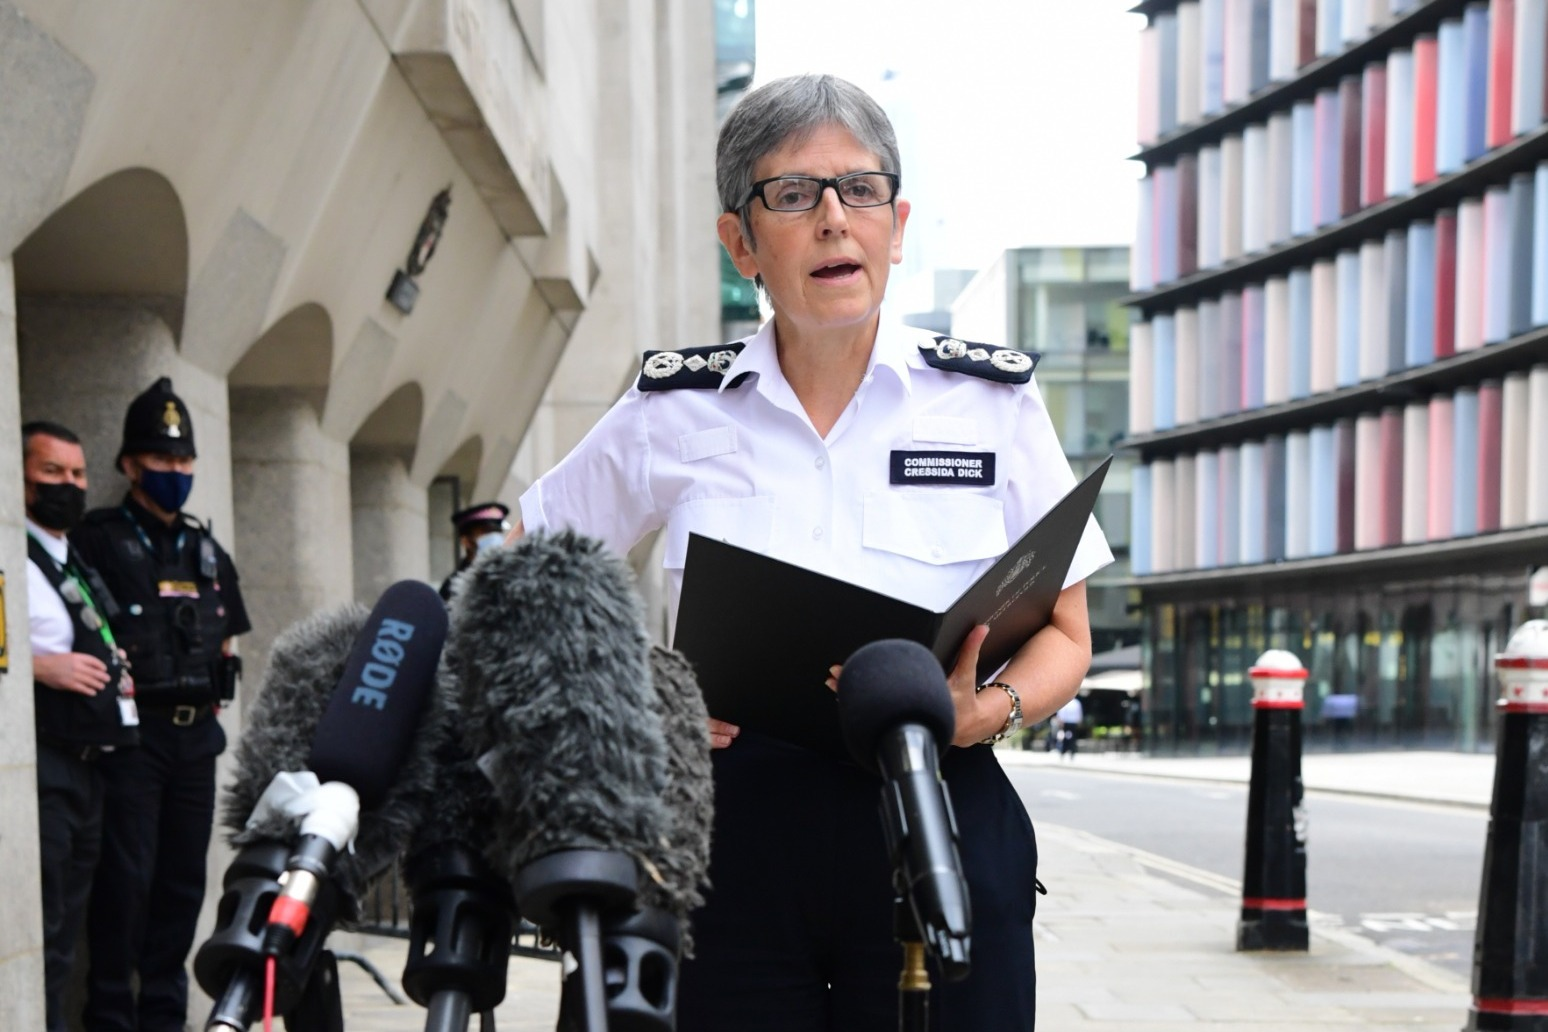 Met police under pressure to review vetting process after Everard killing